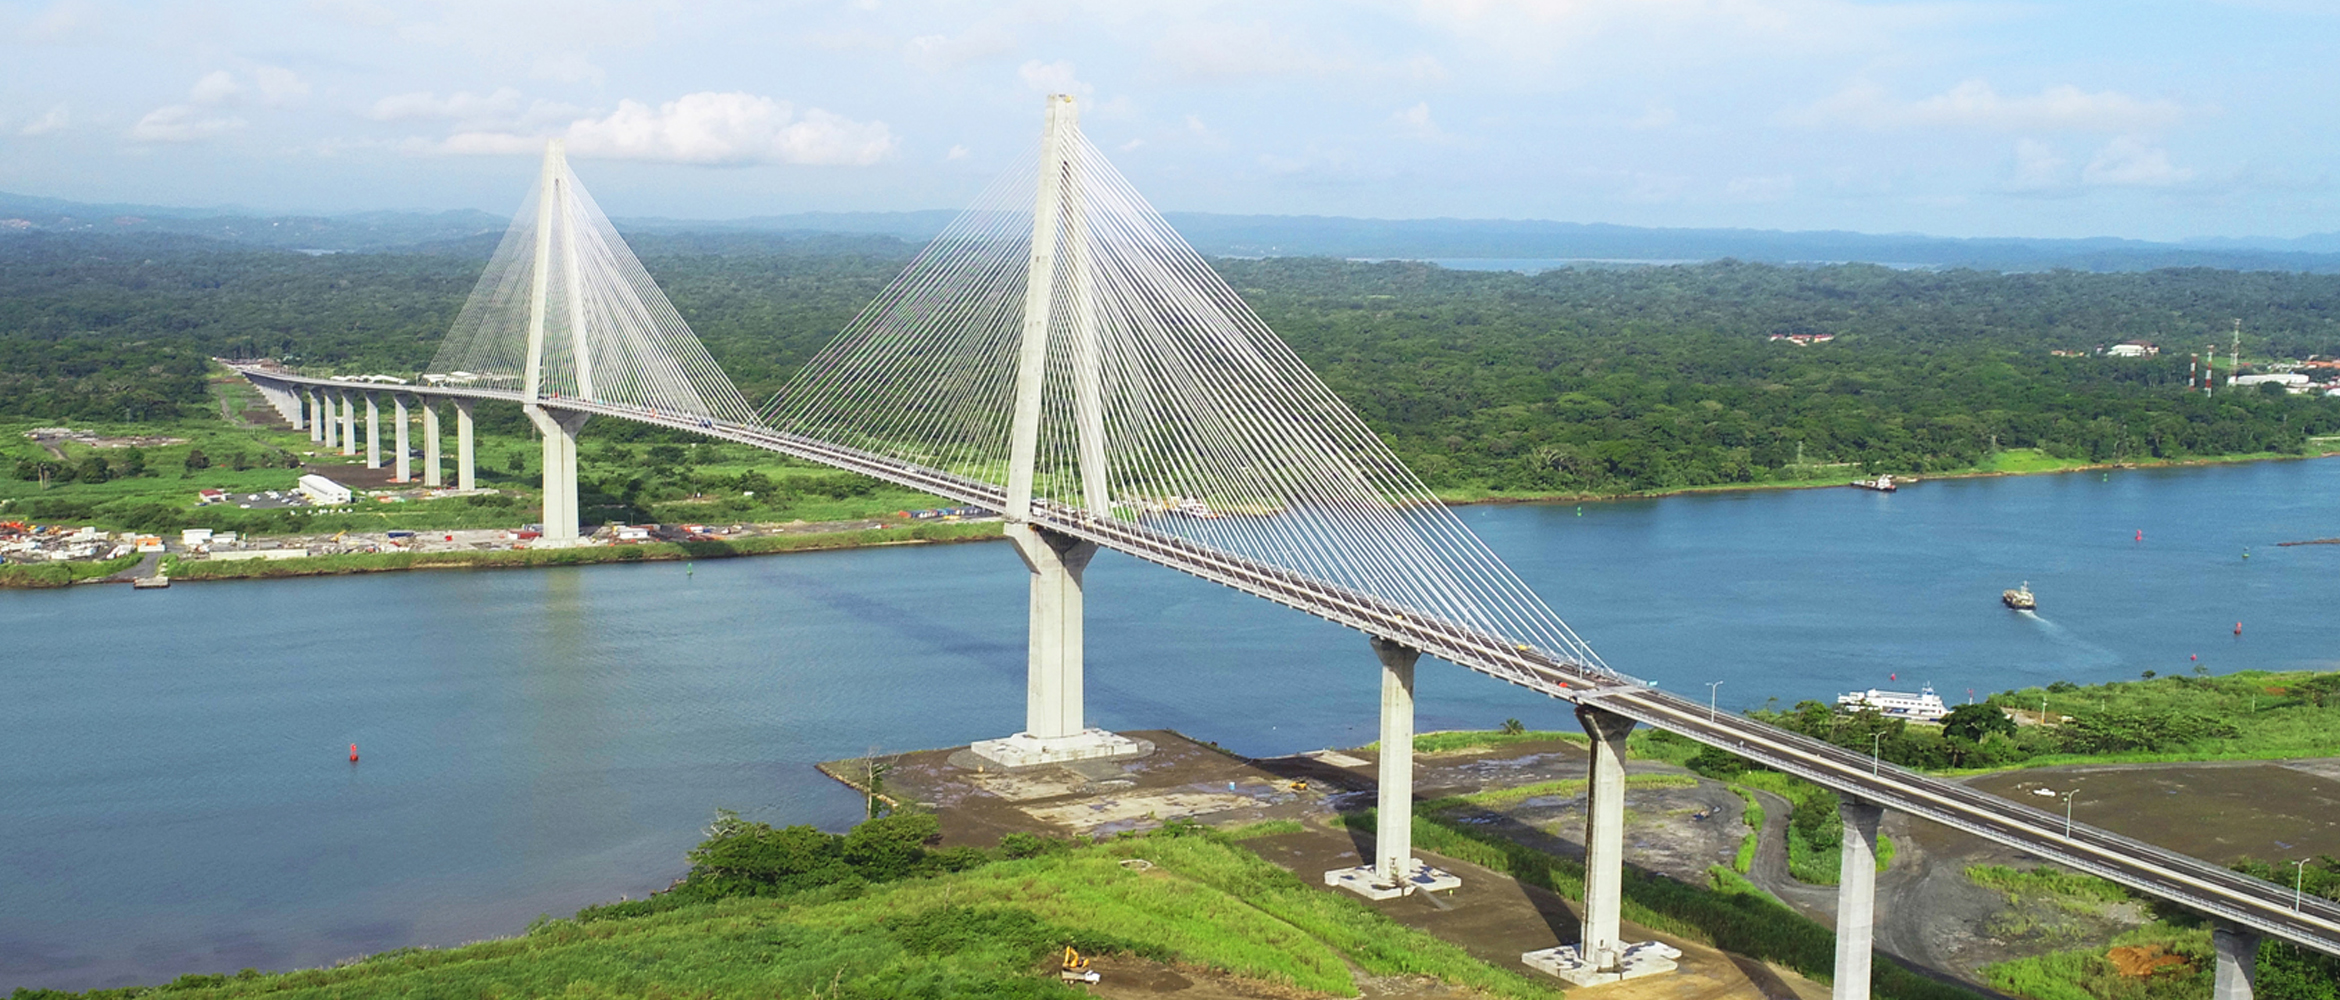 SYSTRA IBT Celebrates Milestone with Opening of Bridge in Panama